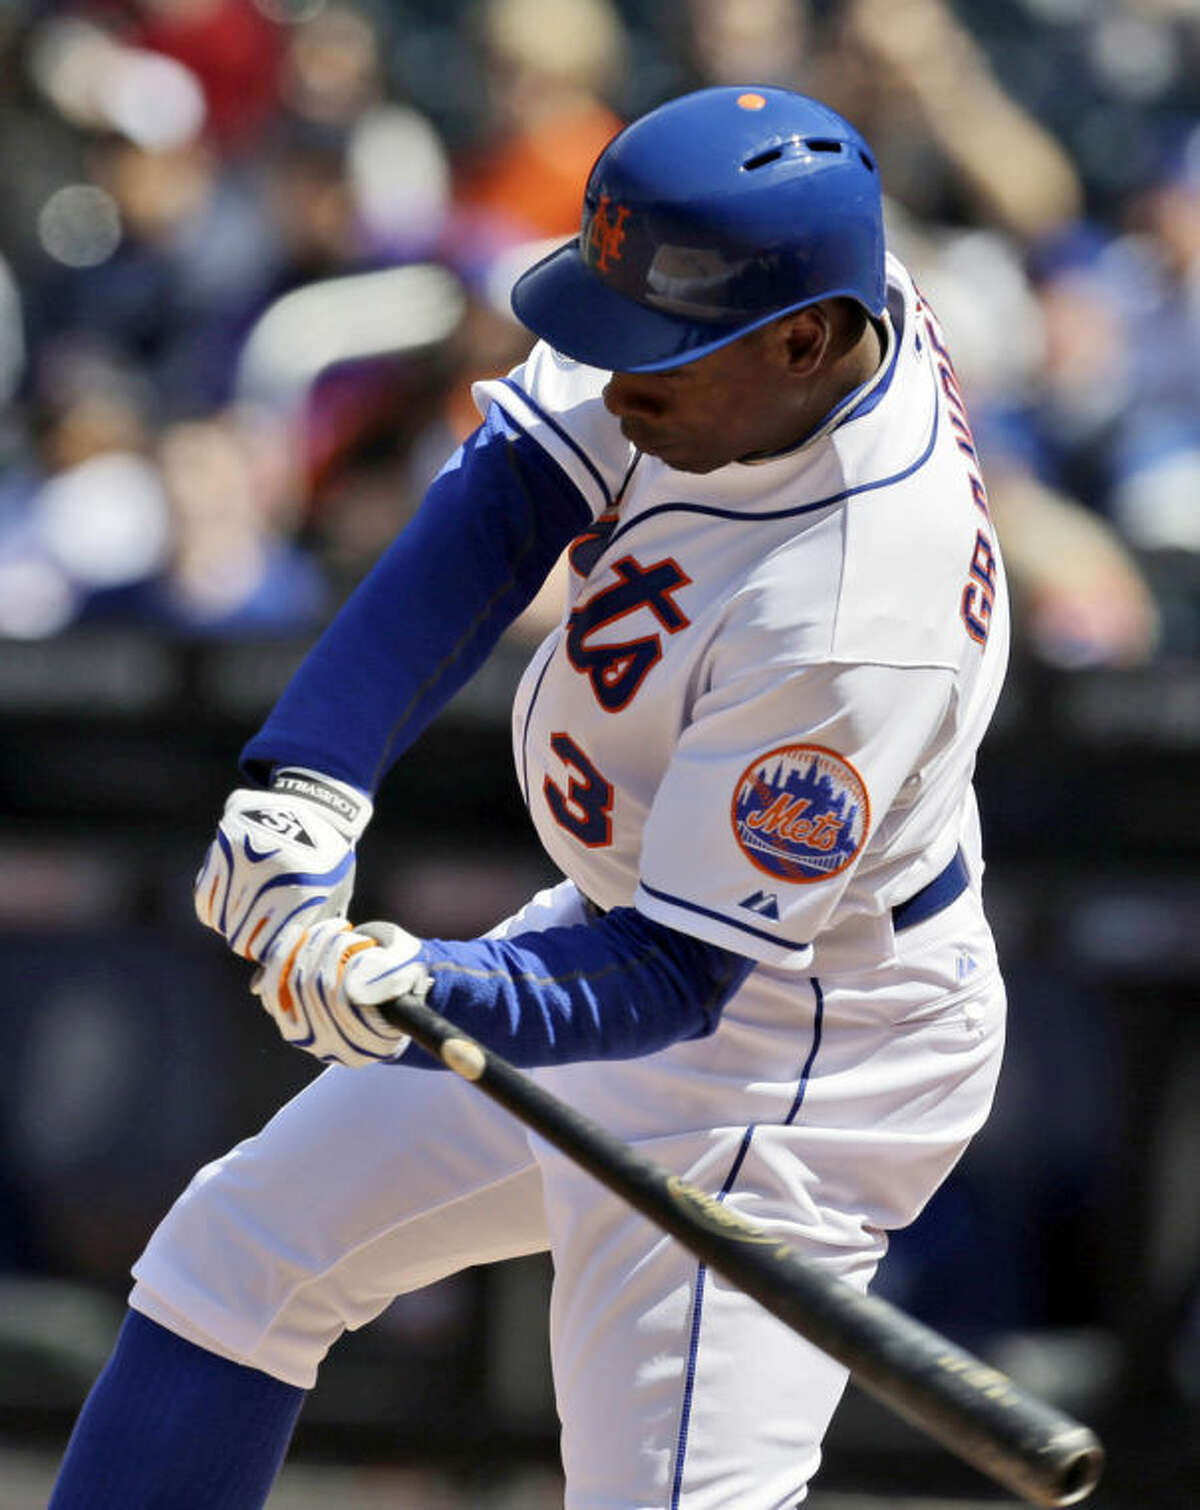 New York Mets' Curtis Granderson hits an RBI double during the first inning of the baseball game against the Washington Nationals at Citi Field, Thursday, April 3, 2014 in New York. (AP Photo/Seth Wenig)